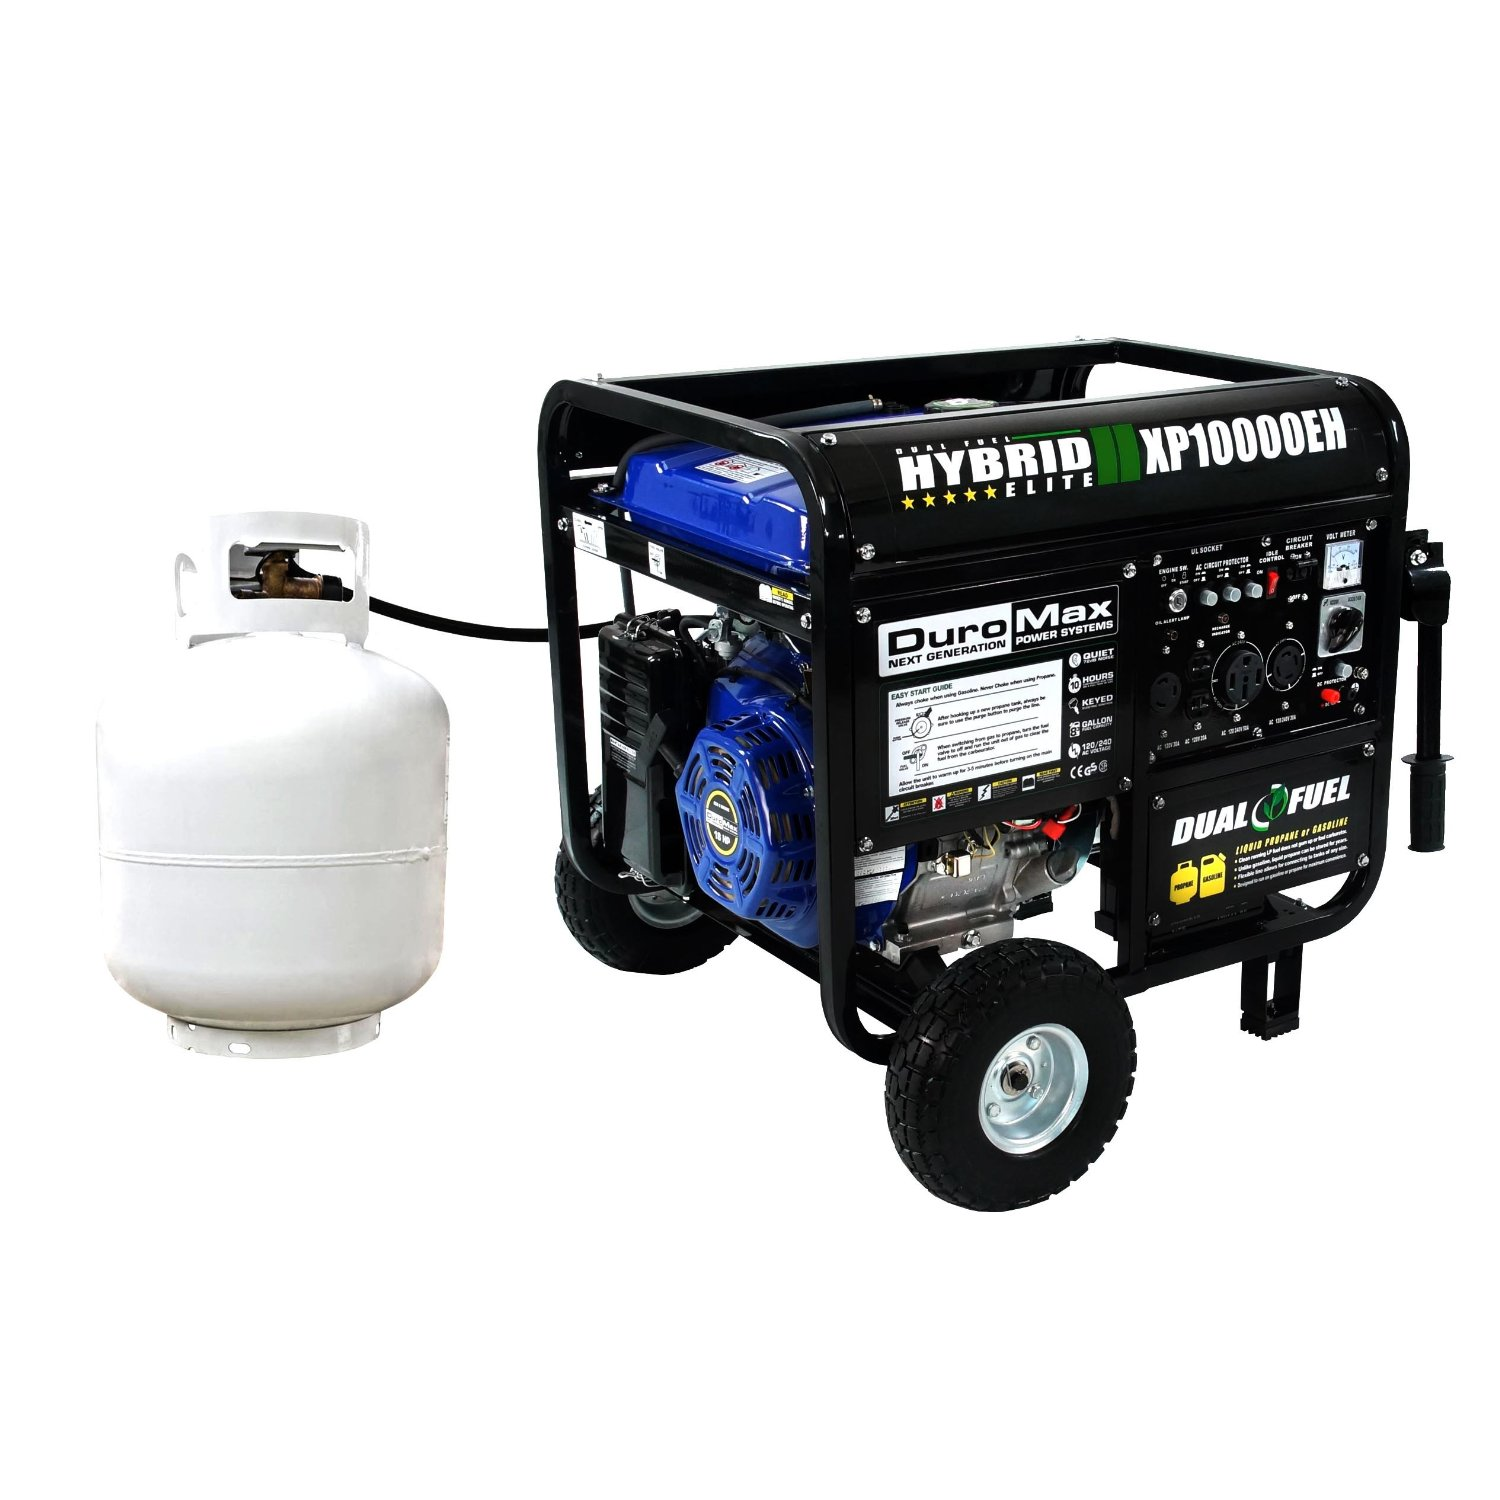 DuroMax Dual Fuel Generator XP EH Watt LP & Gas Idle